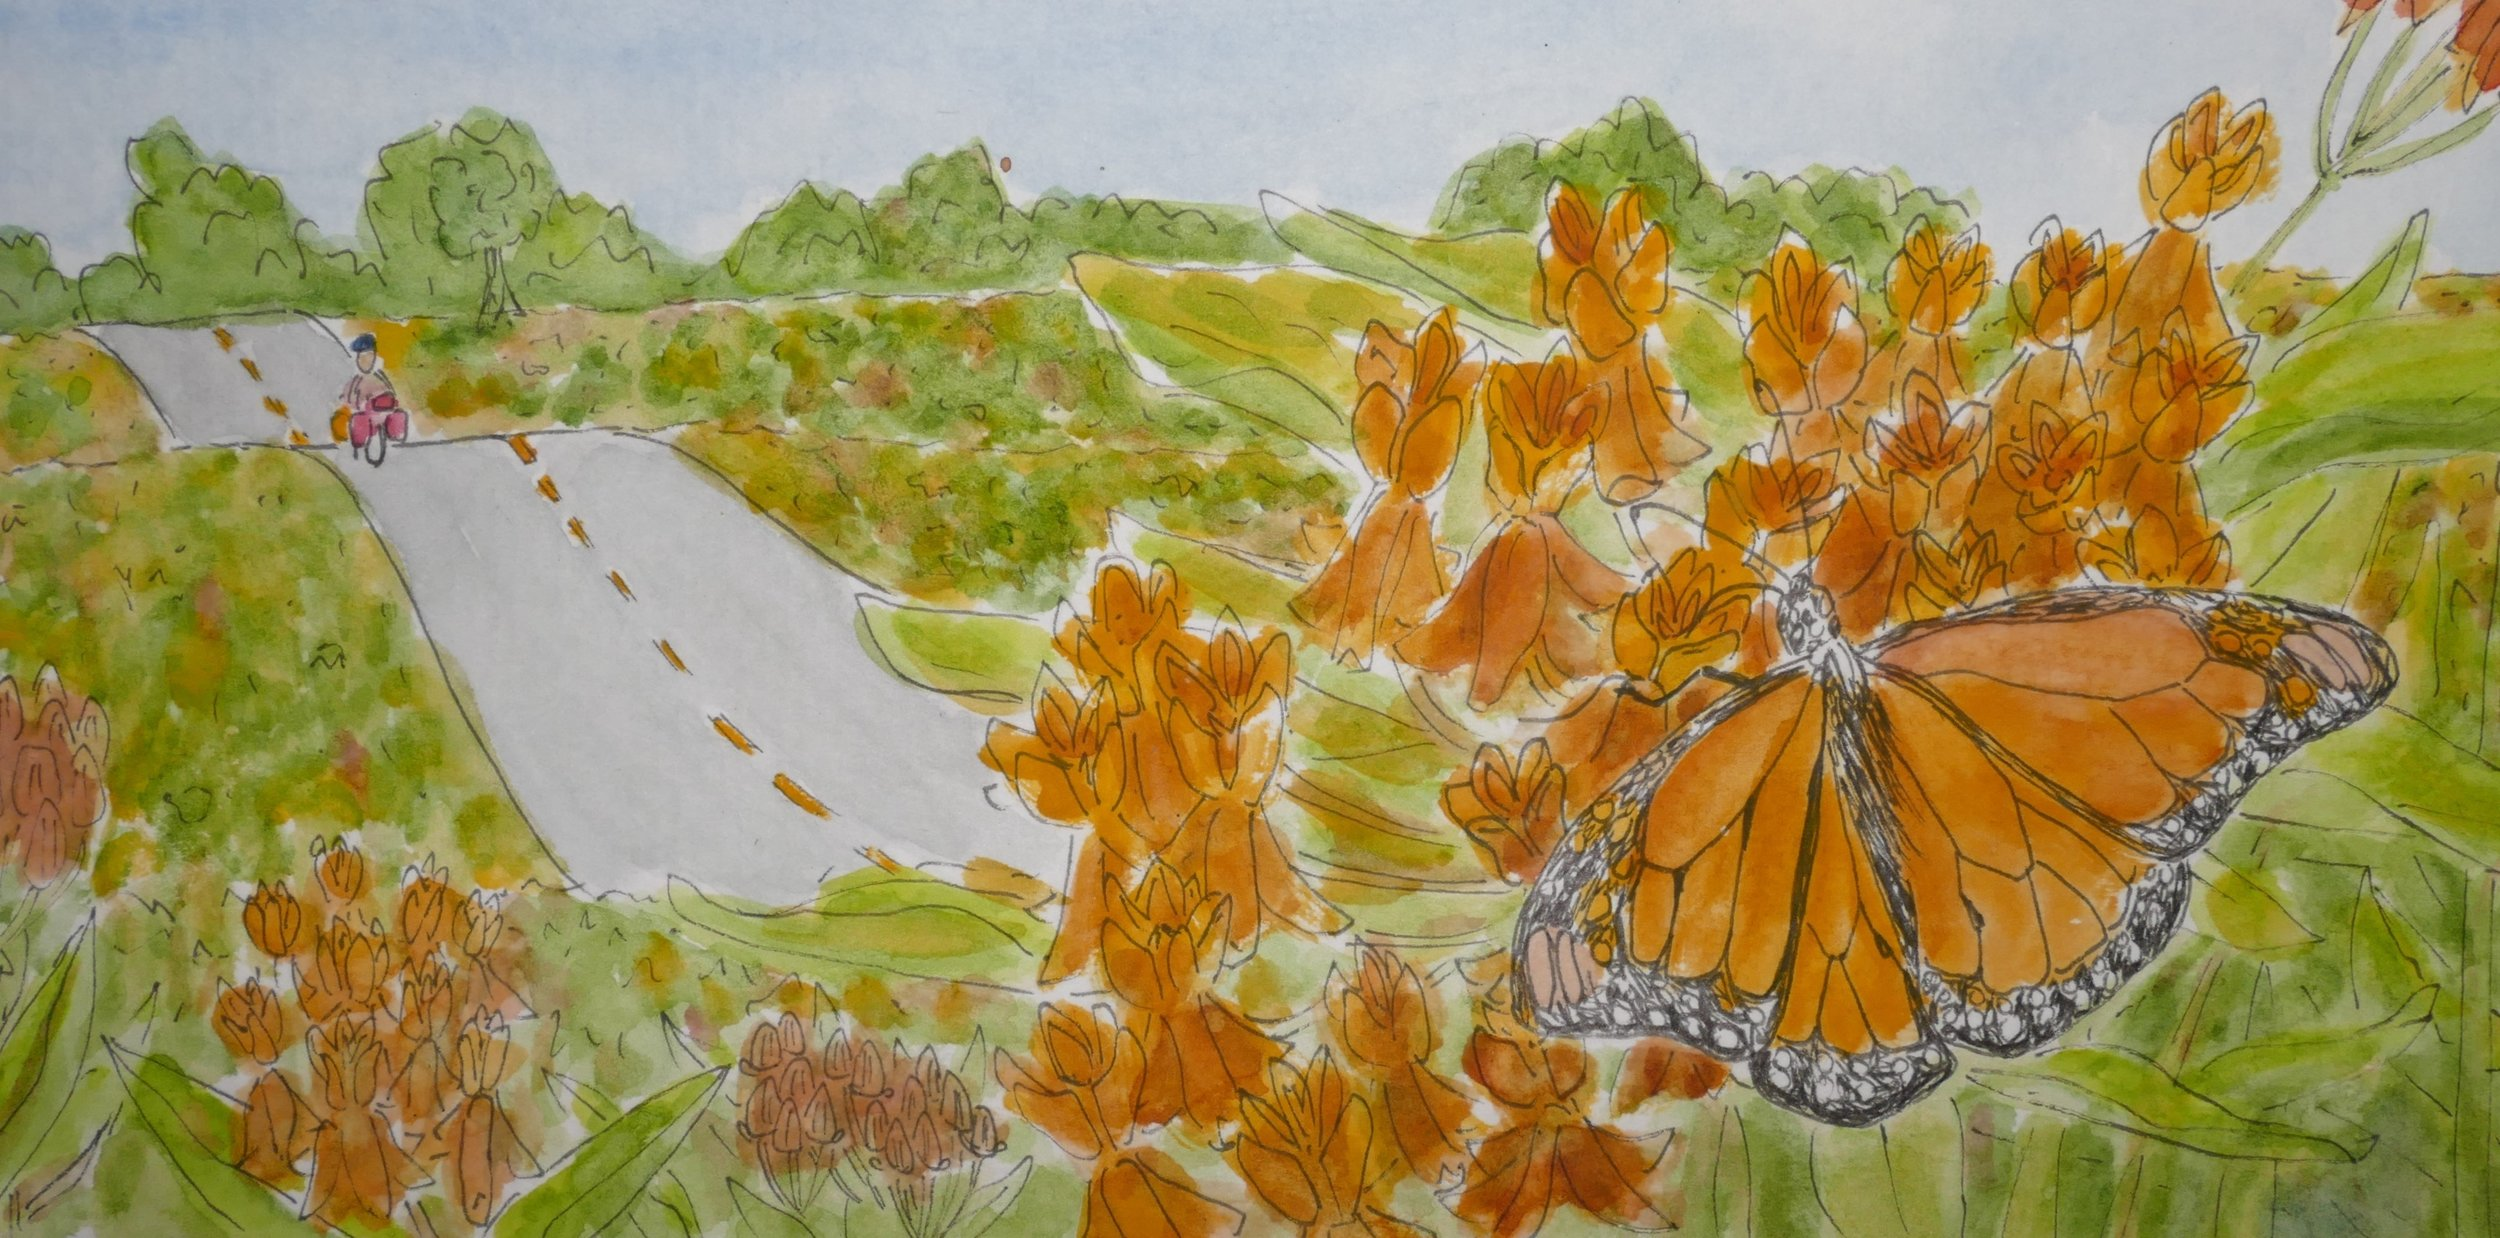 EE. Pedaling south I began to see signs of fall. Butterfly milkweed flashed like hazard lights sparse but strong in fall's browning fields.